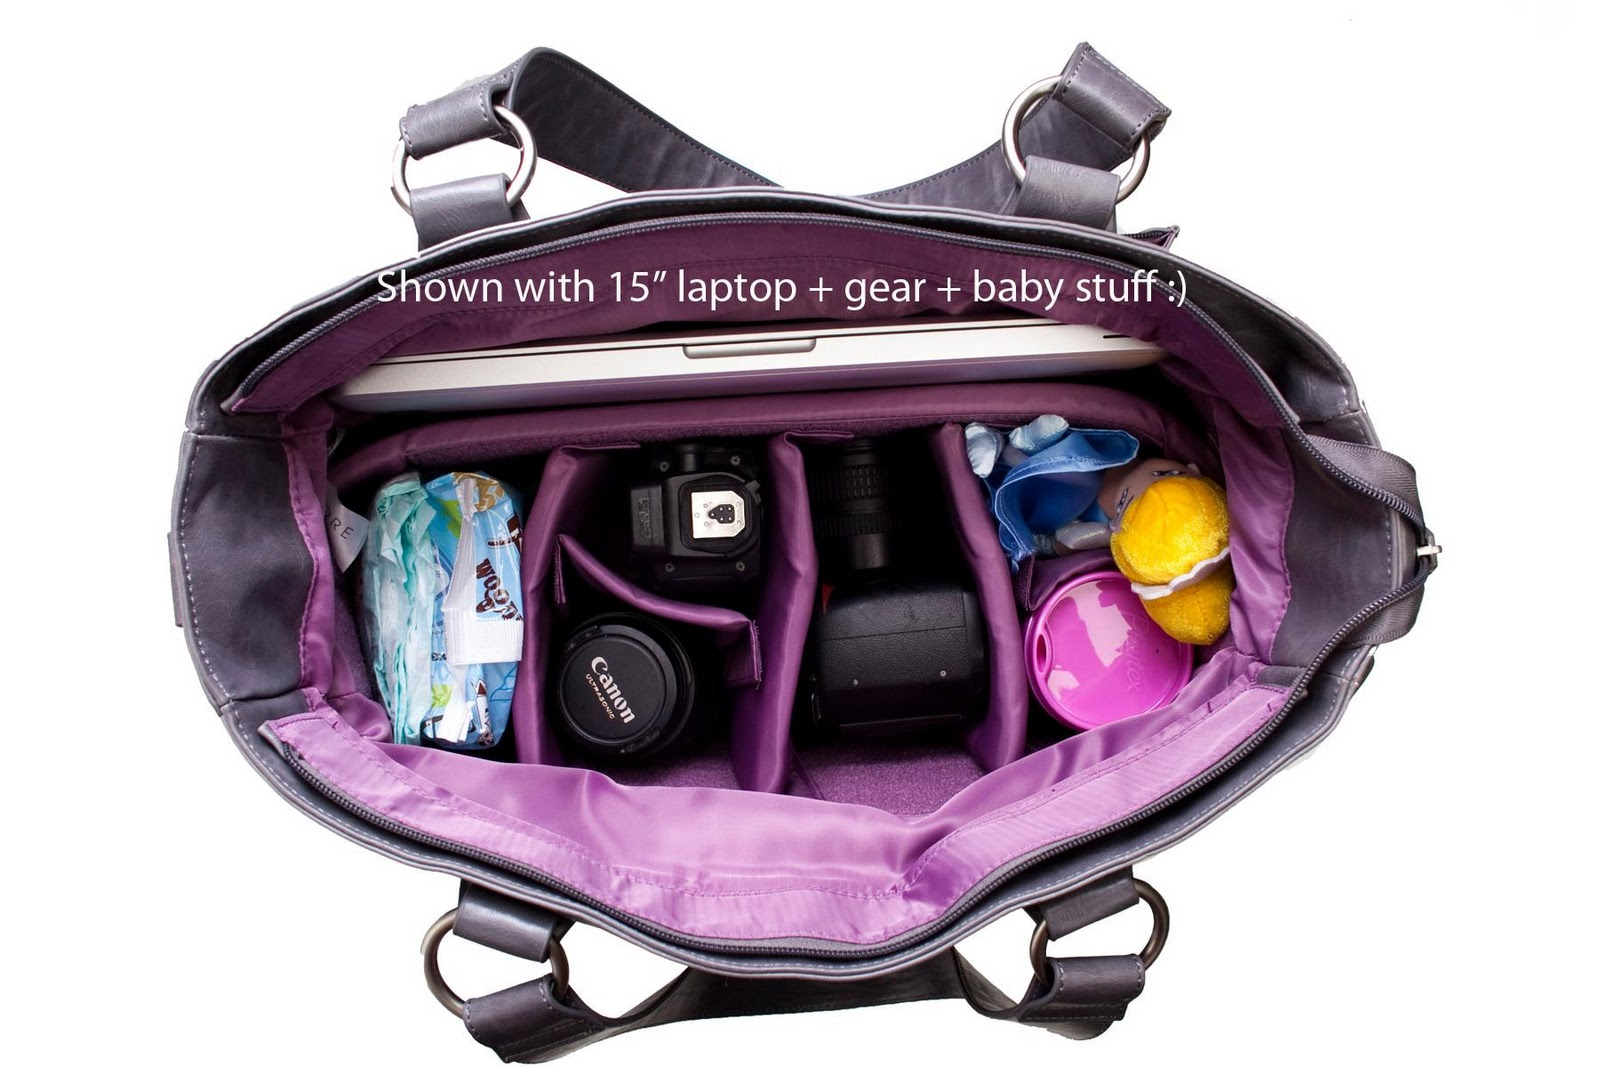 the good life blog]: Let's talk about diaper bags AND cameras